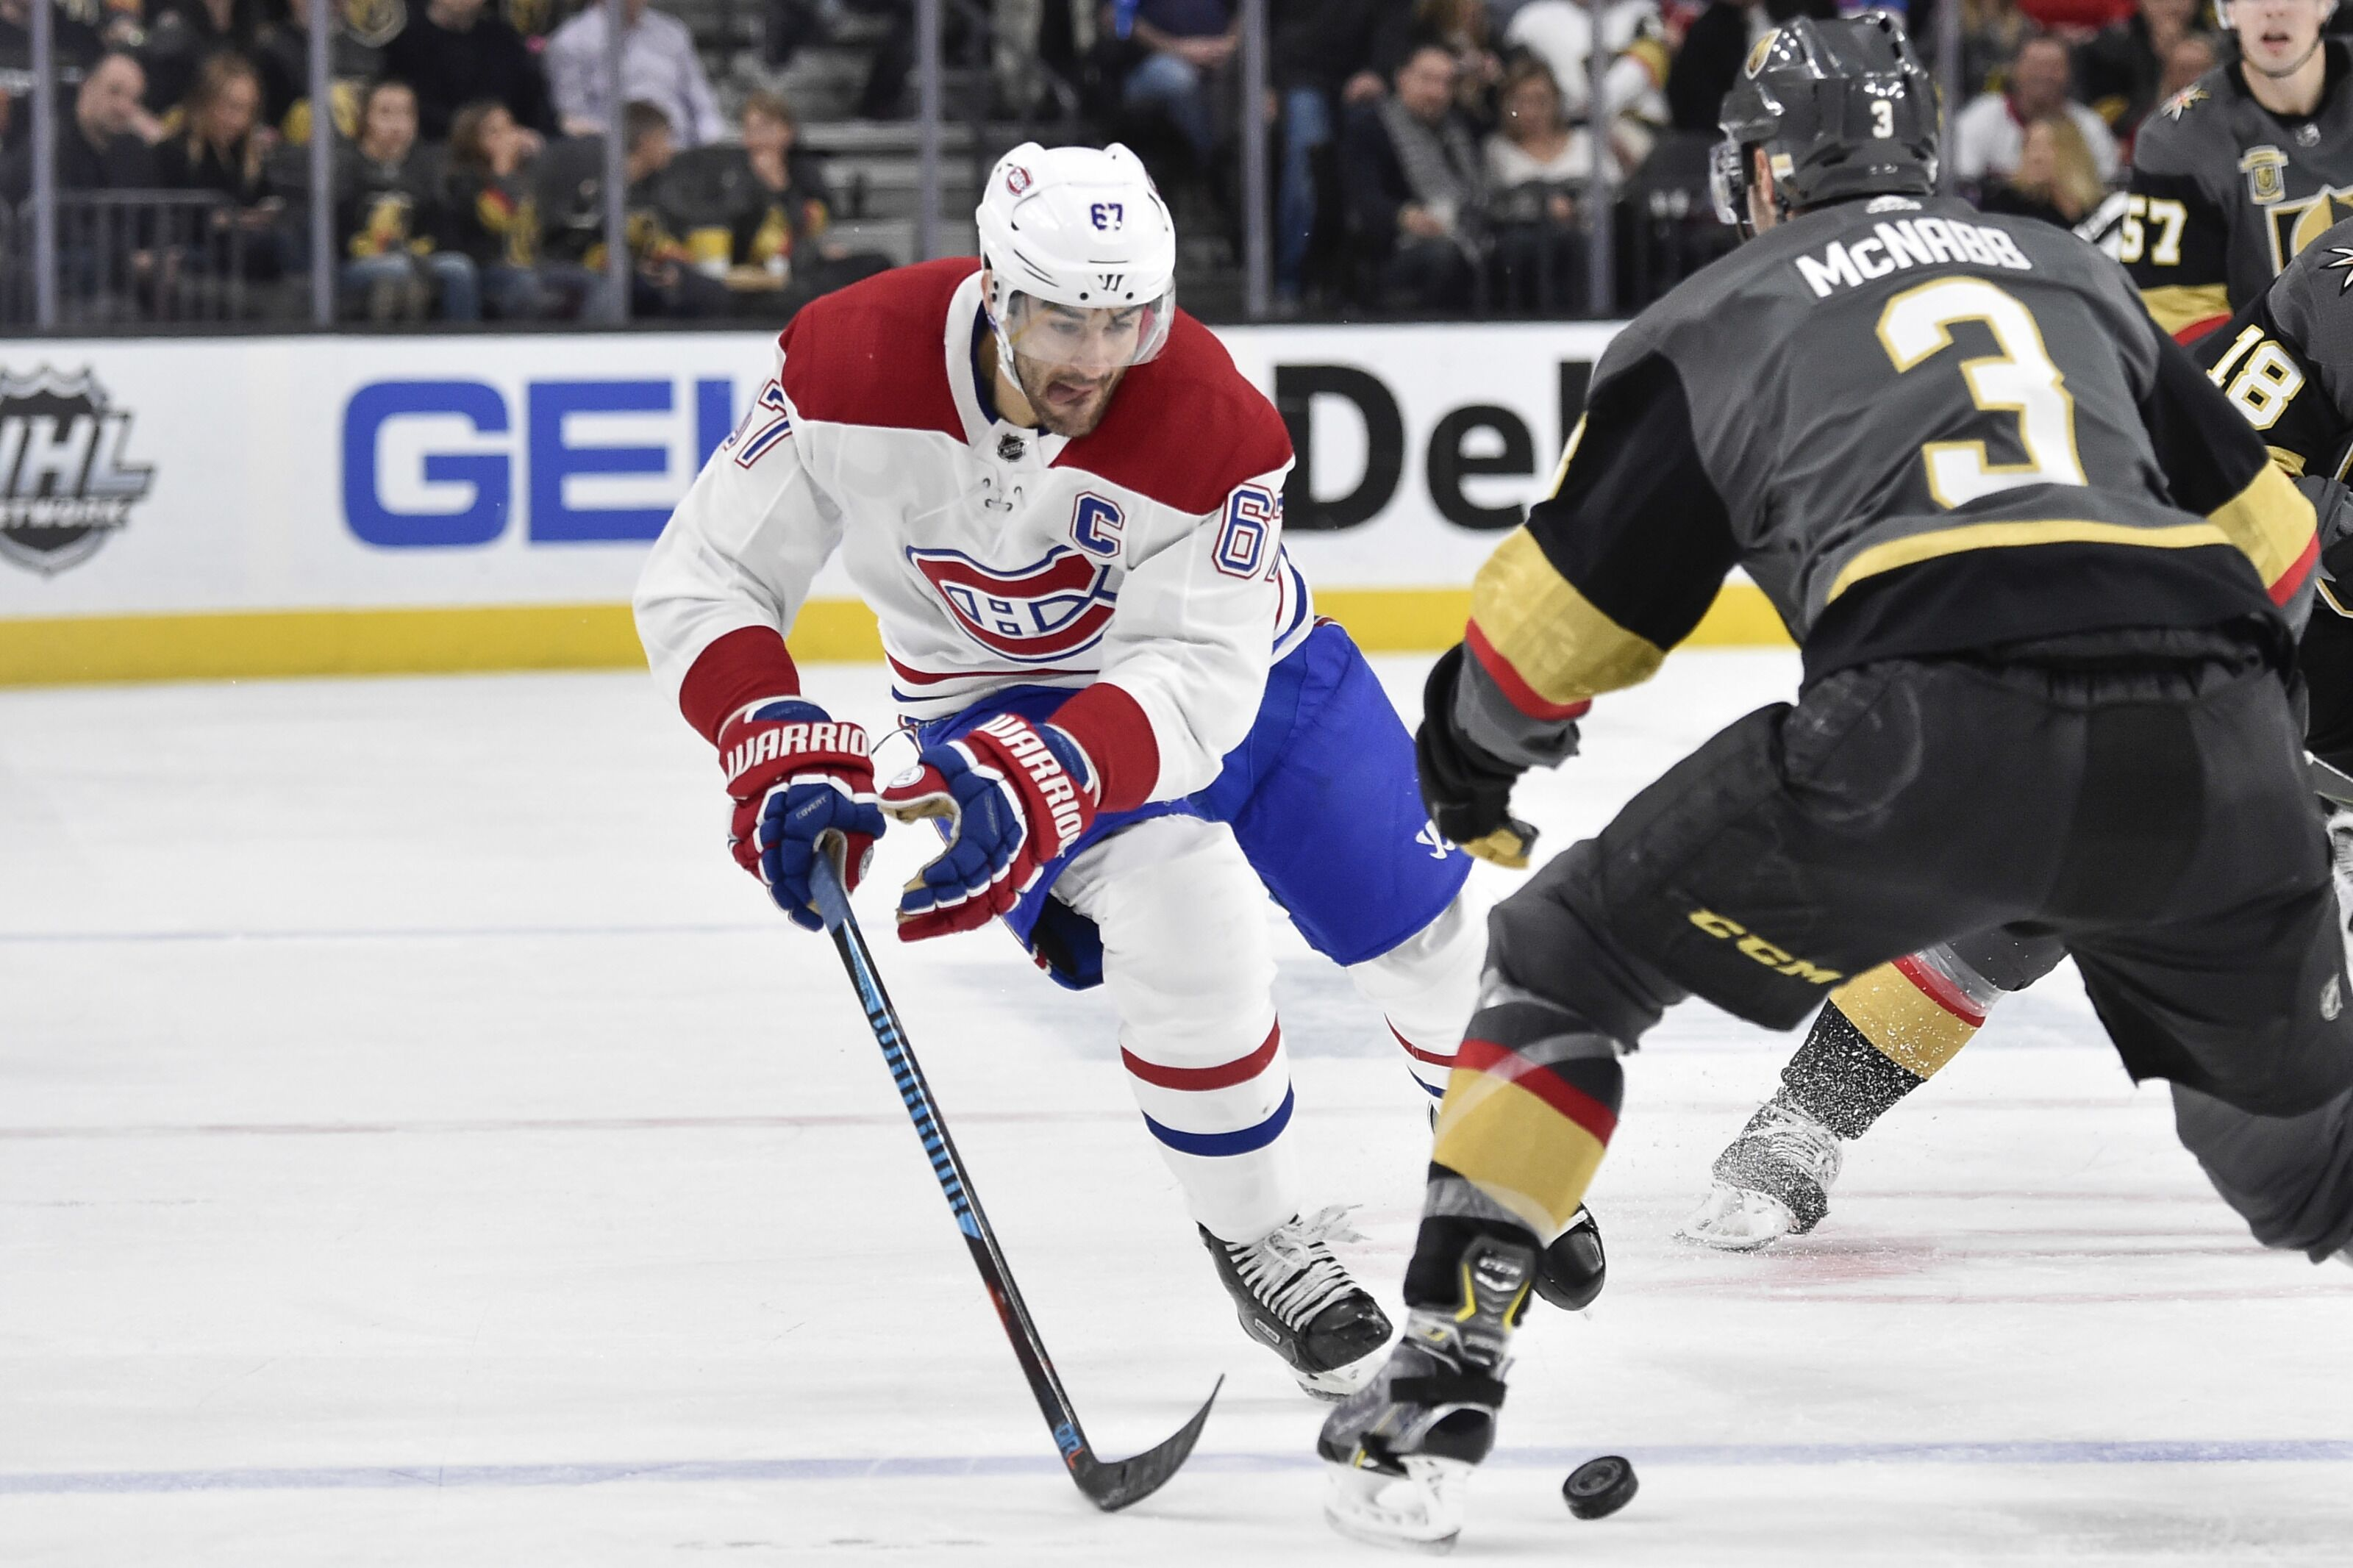 Montreal Canadiens  Initial Reaction to the Max Pacioretty trade 0011f0cdf